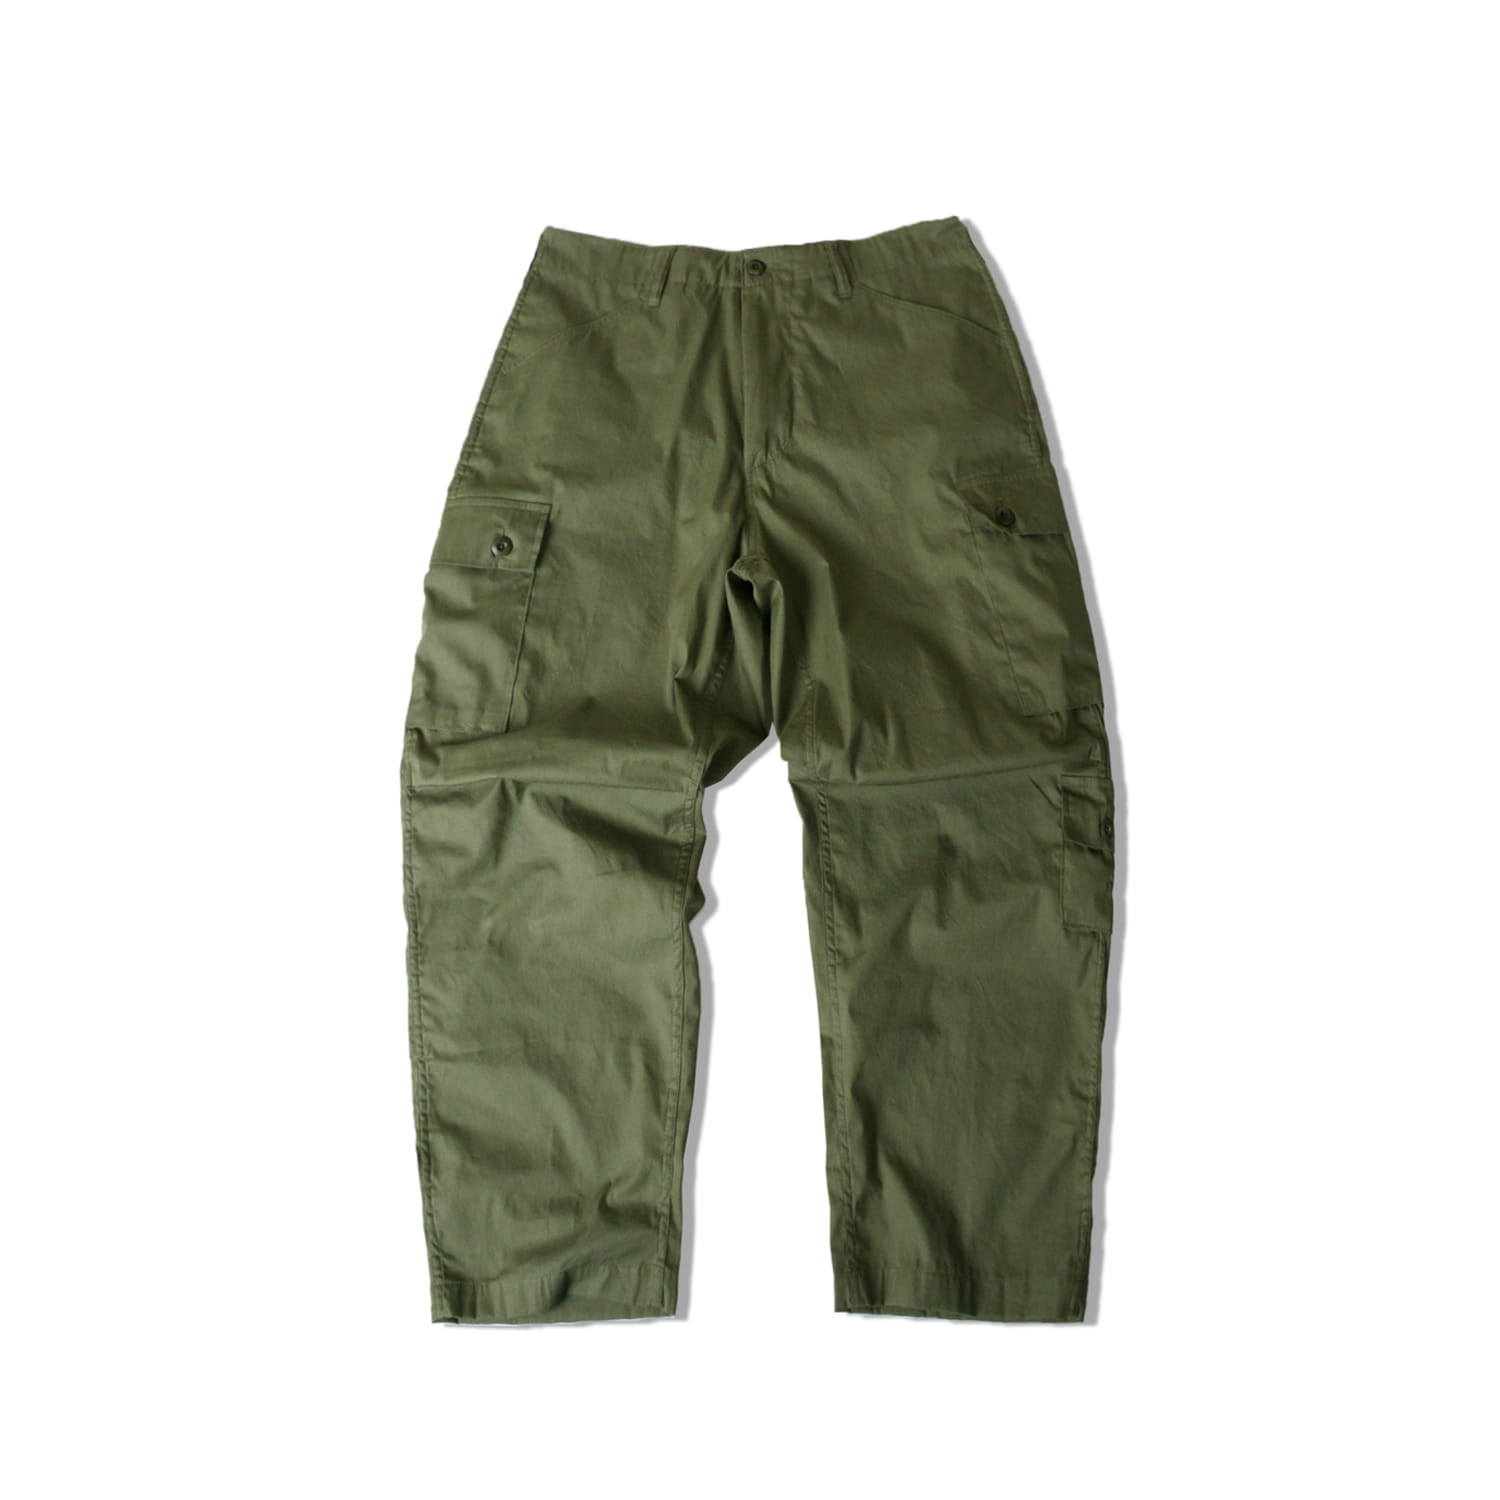 Jungle combat trousers olive